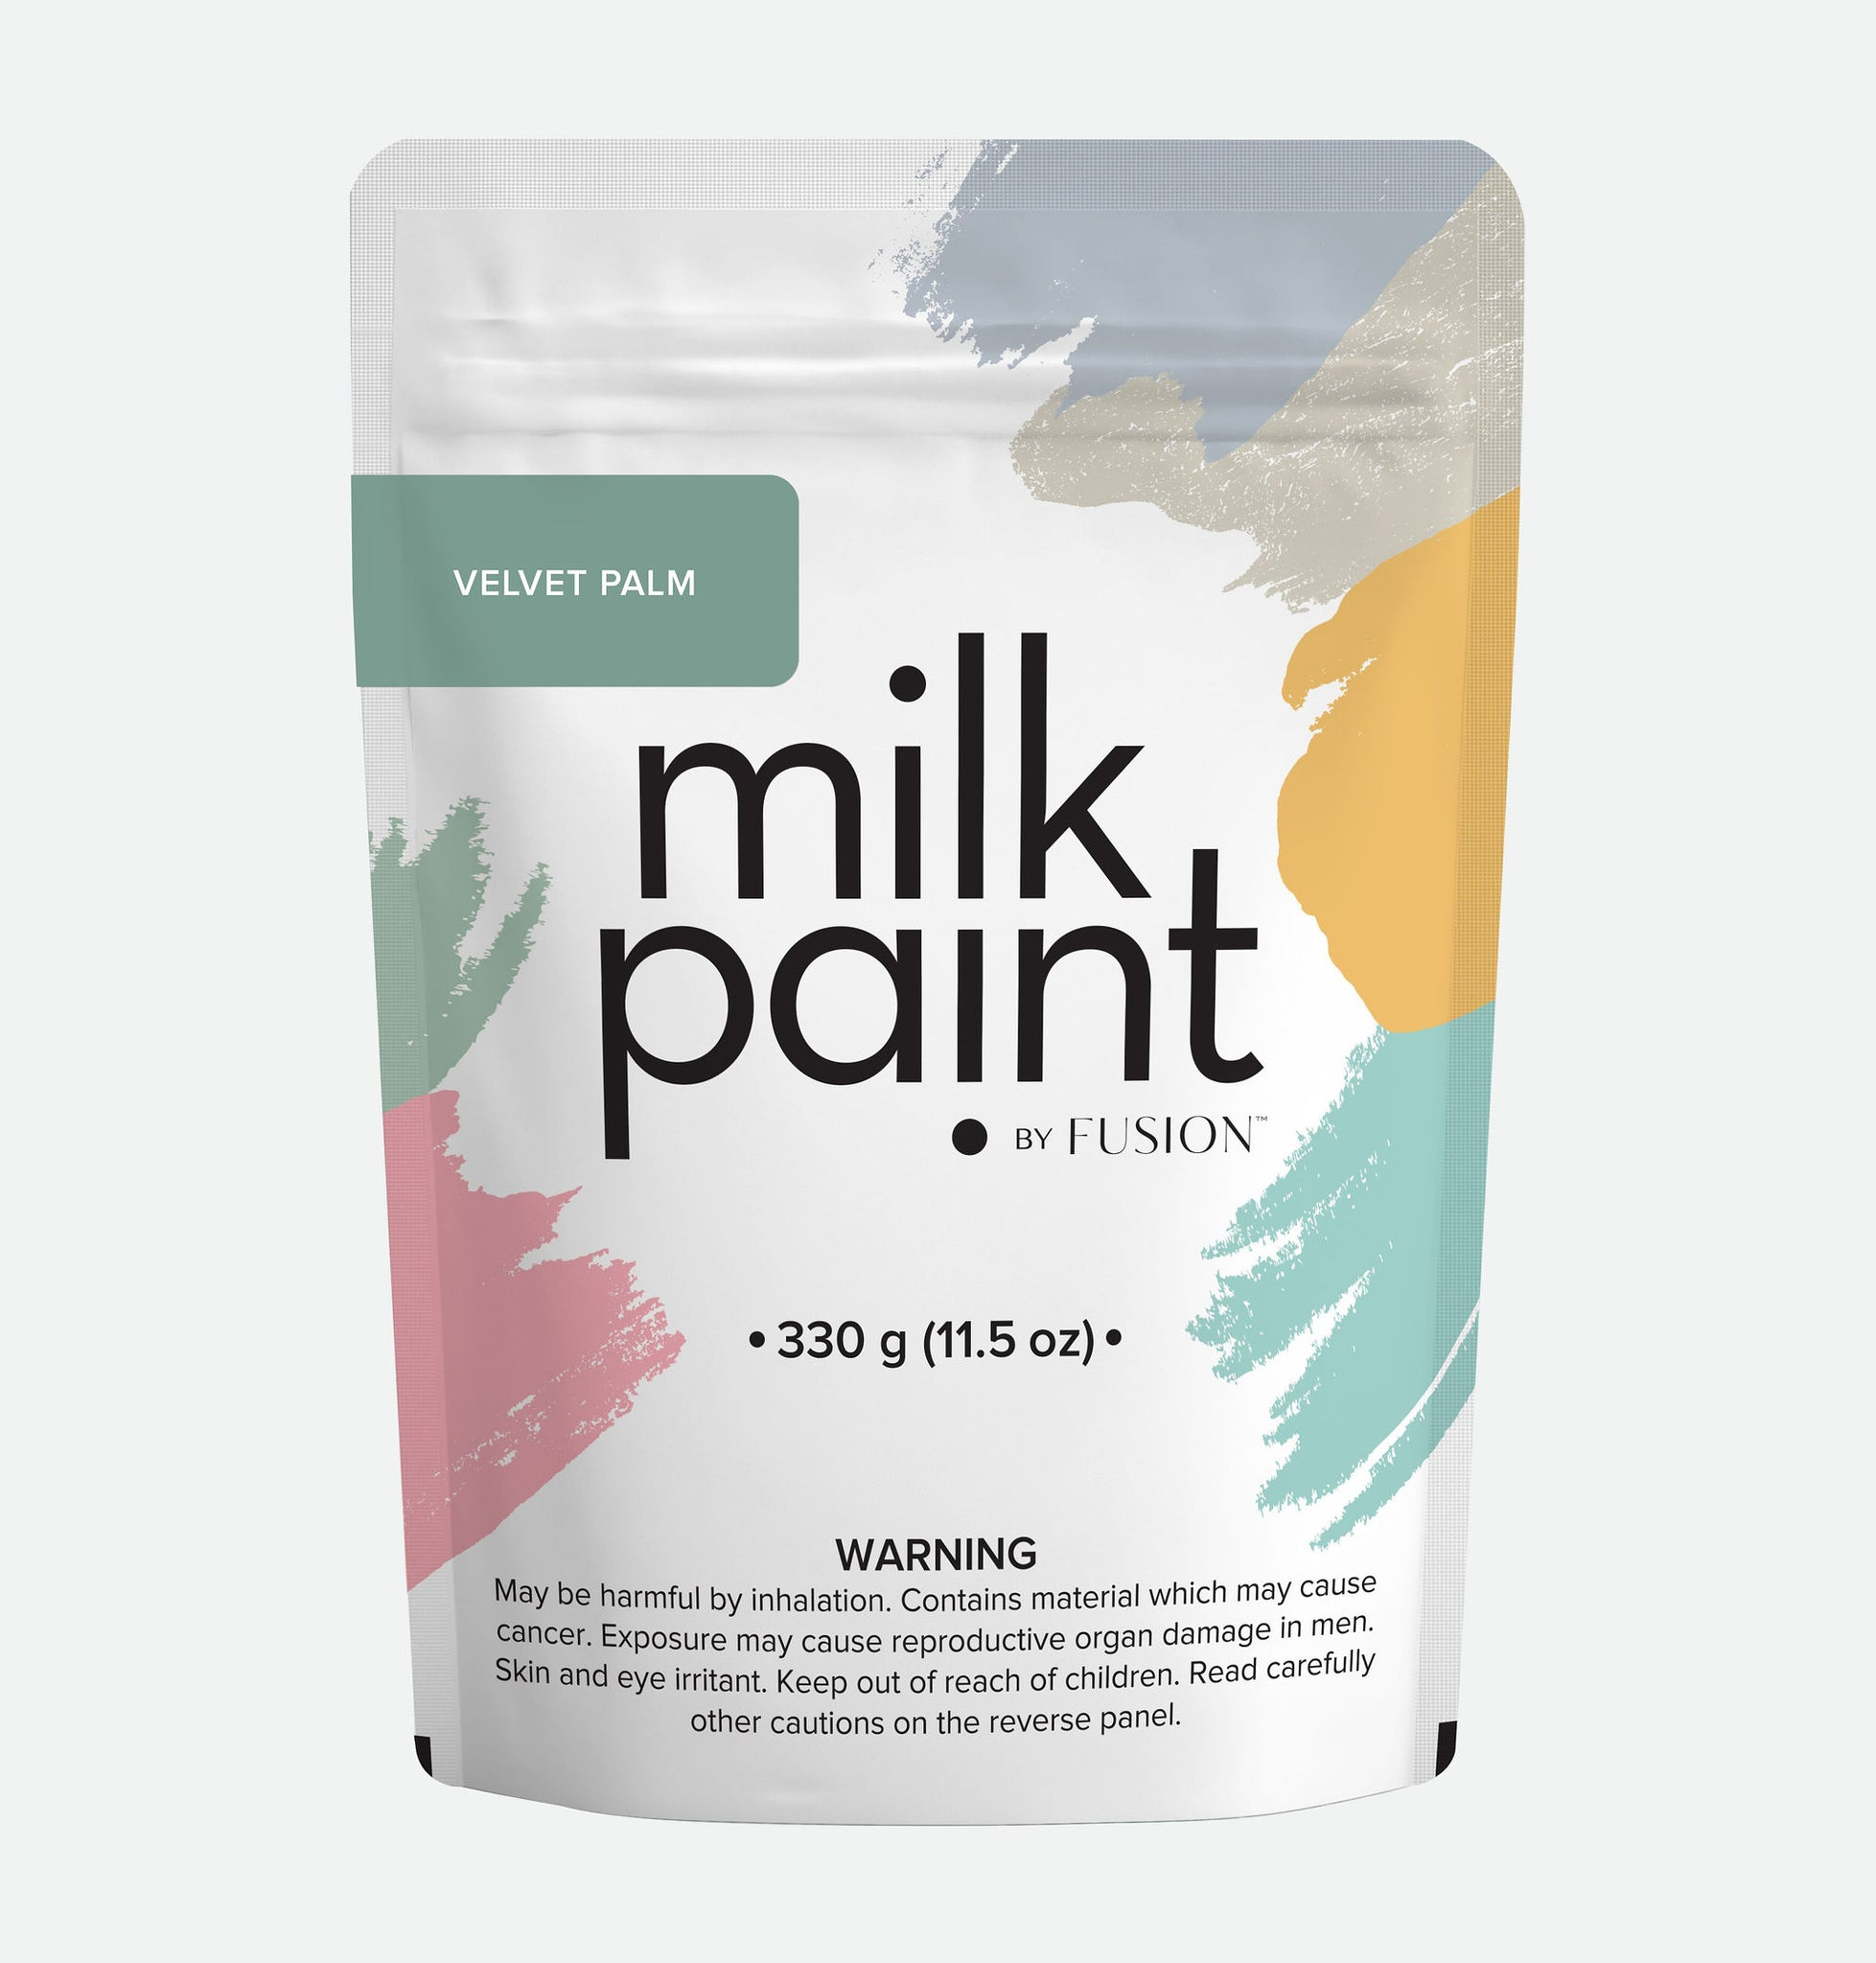 Velvet Palm Milk Paint